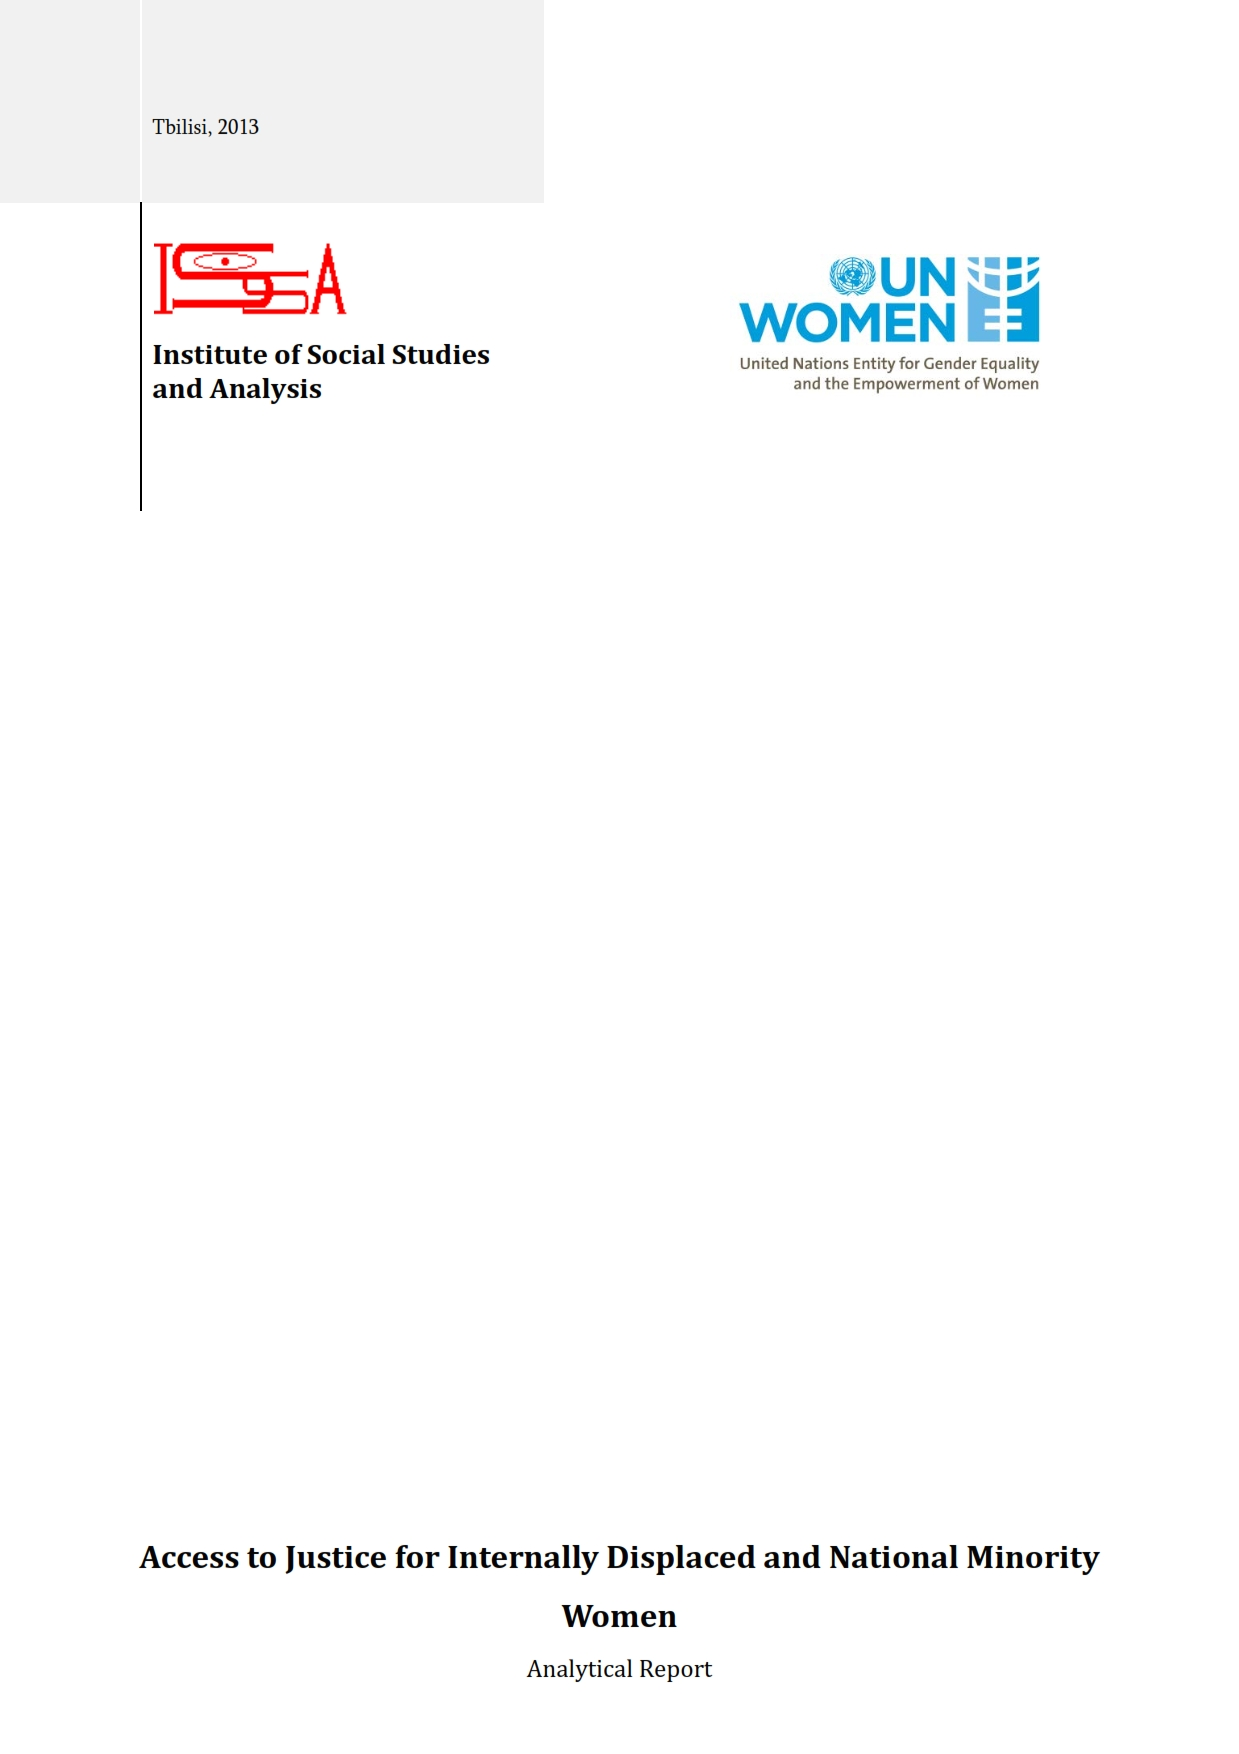 Access to Justice for Internally Displaced and National Minority Women